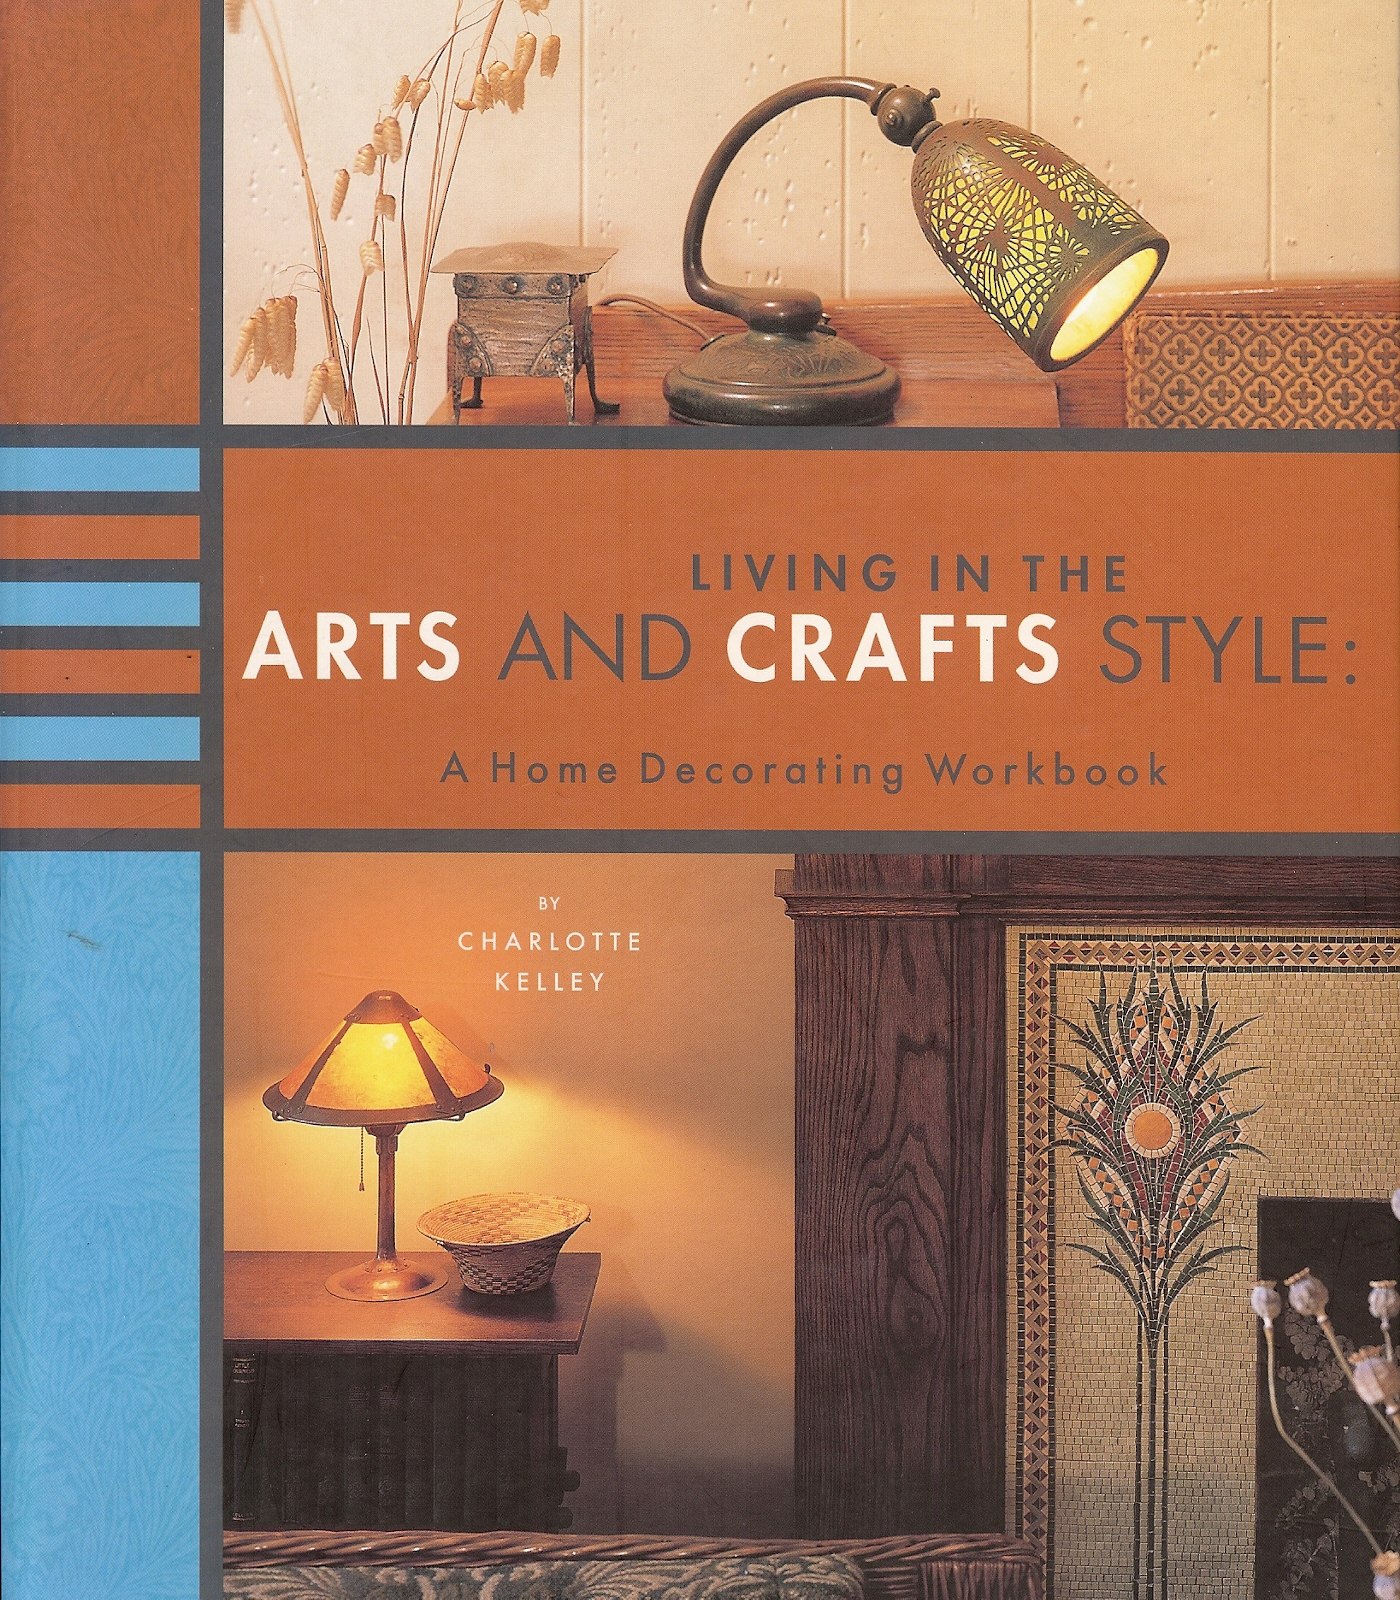 Image for LIVING IN THE ARTS AND CRAFTS STYLE : A Home Decorating Workbook